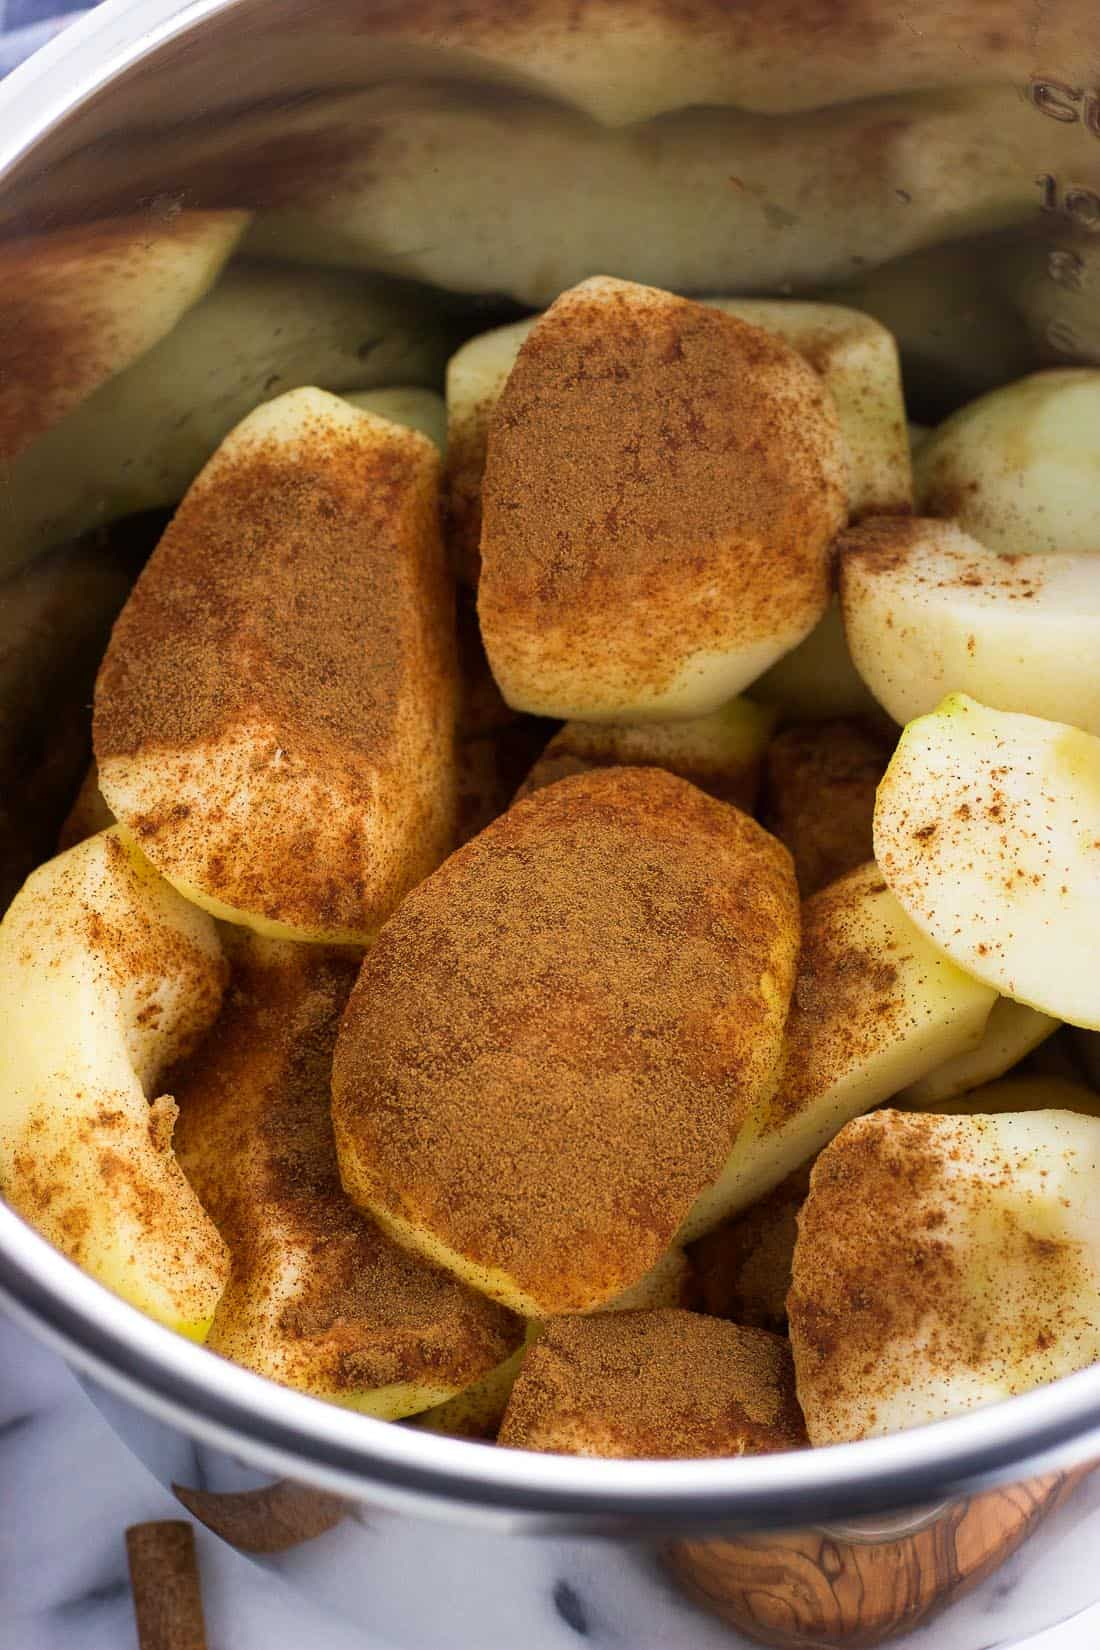 Peeled and quartered apples pre-cook in the Instant Pot, covered in ground cinnamon.